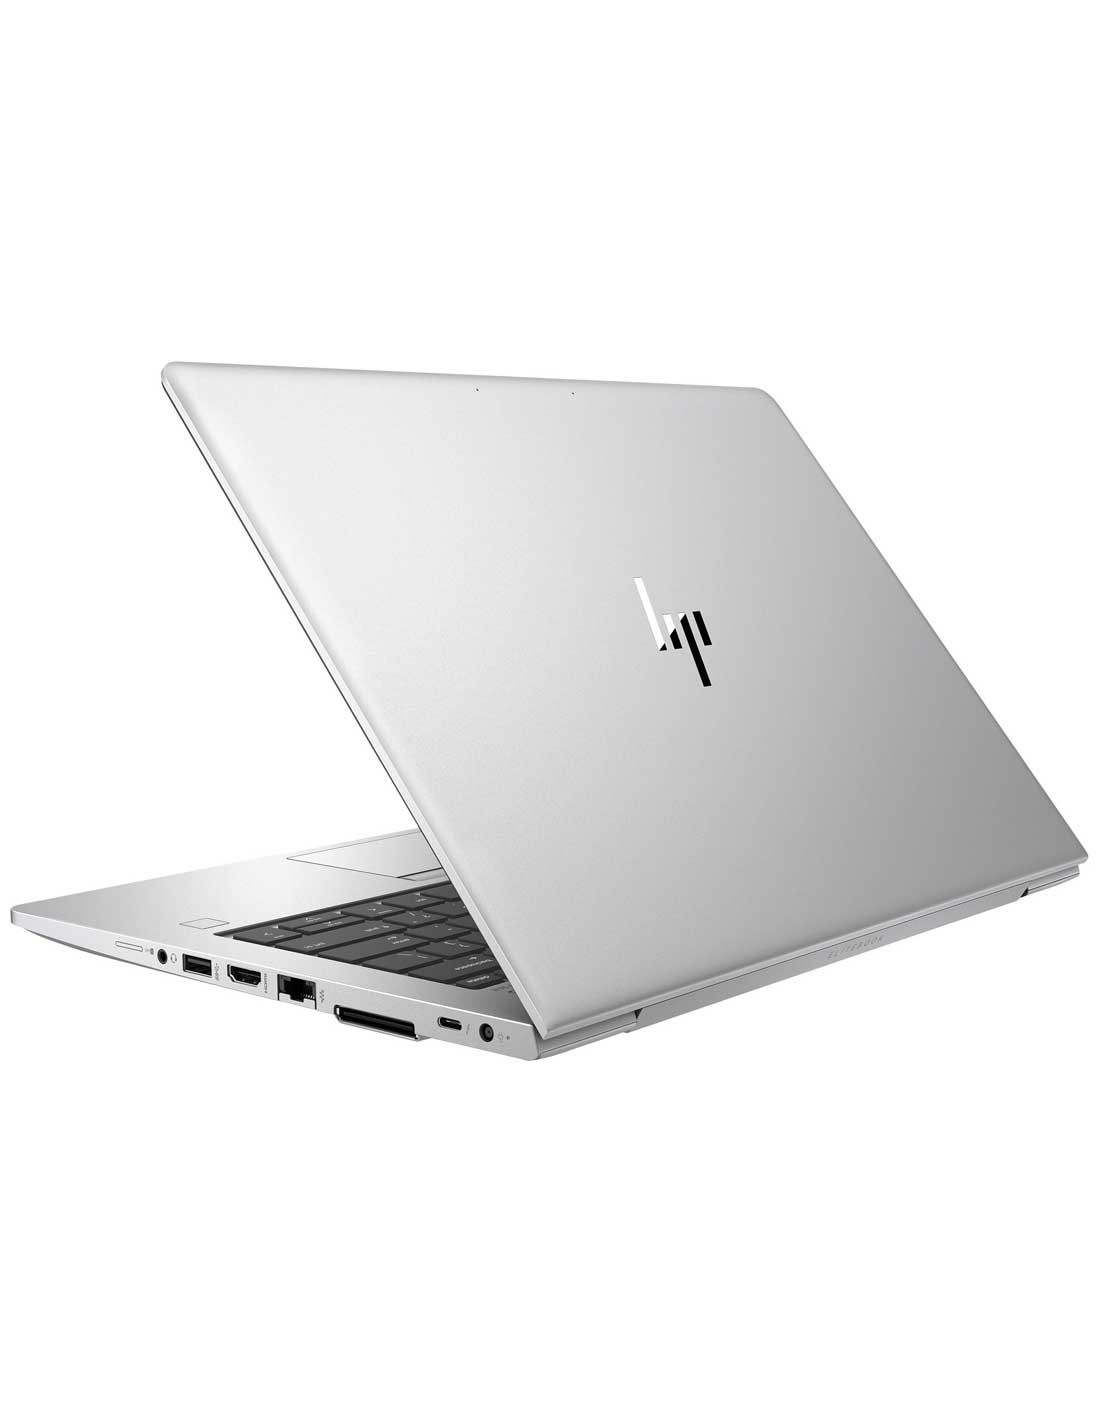 HP EliteBook 840 G5 Notebook i5 images and photos